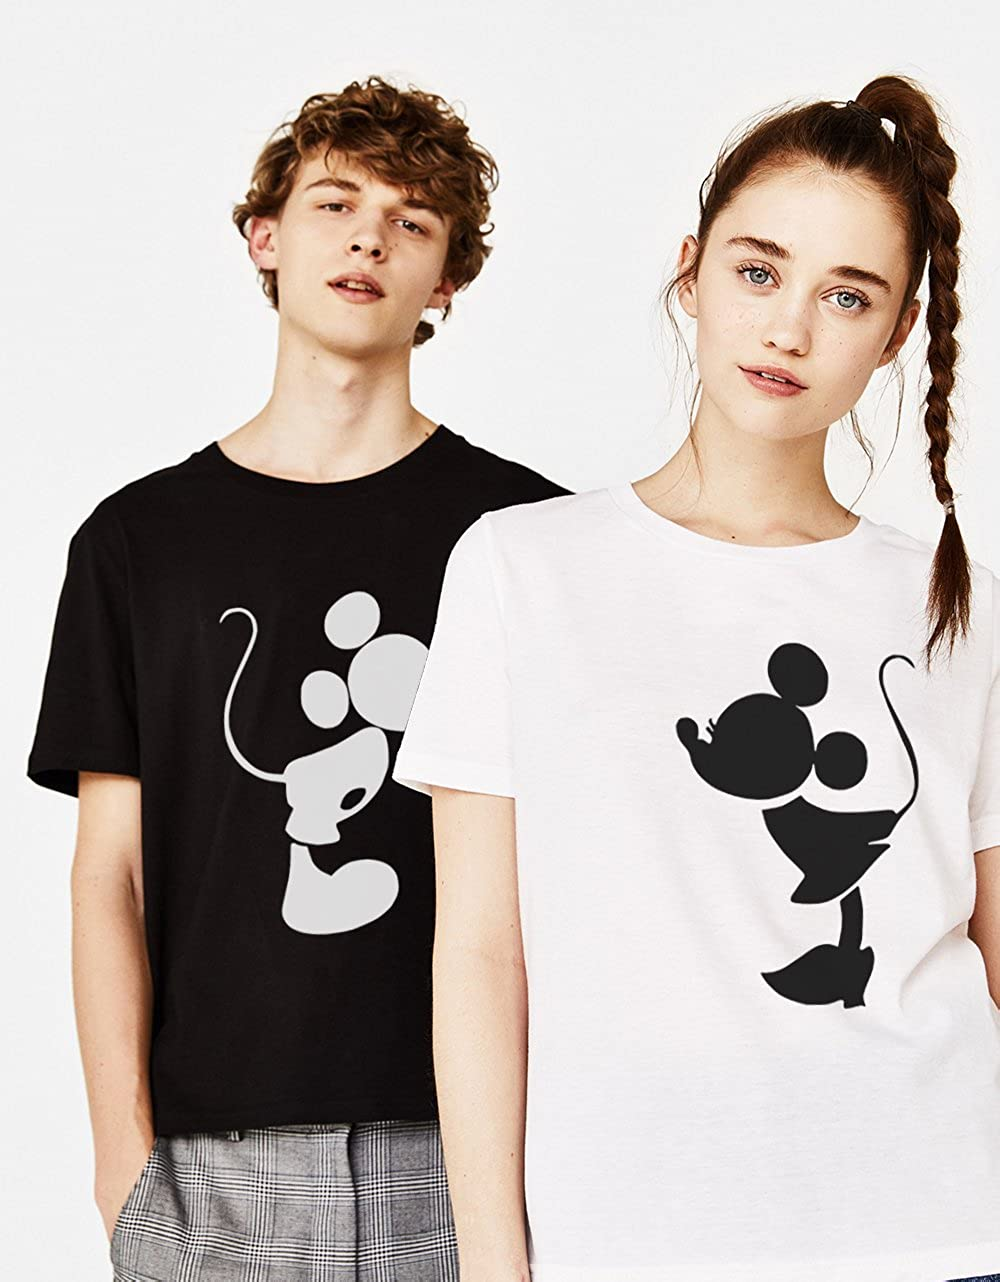 62bd690f2 Amazon.com: Couple Tshirt Mickey Minnie Shirts Matching Cute Cotton Tops  Valentine's Gift Tees: Clothing